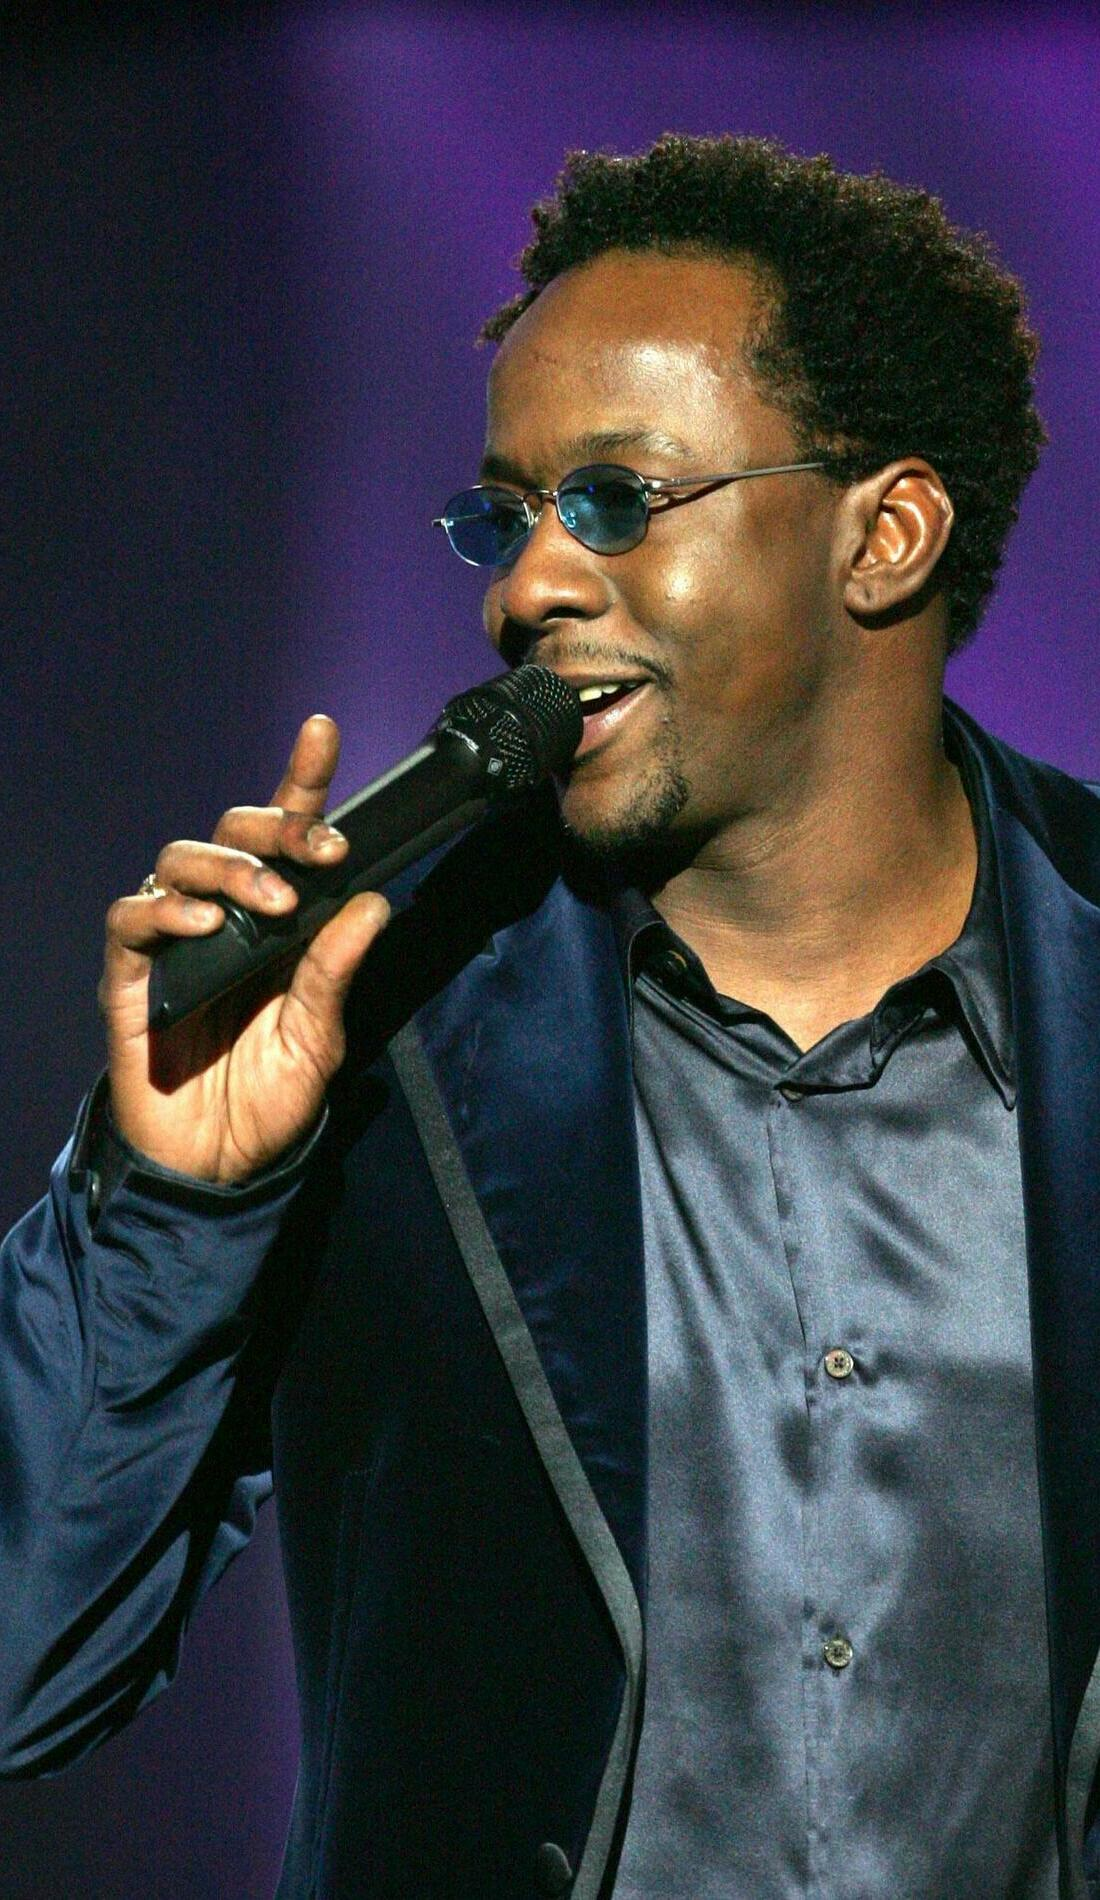 A Bobby Brown live event